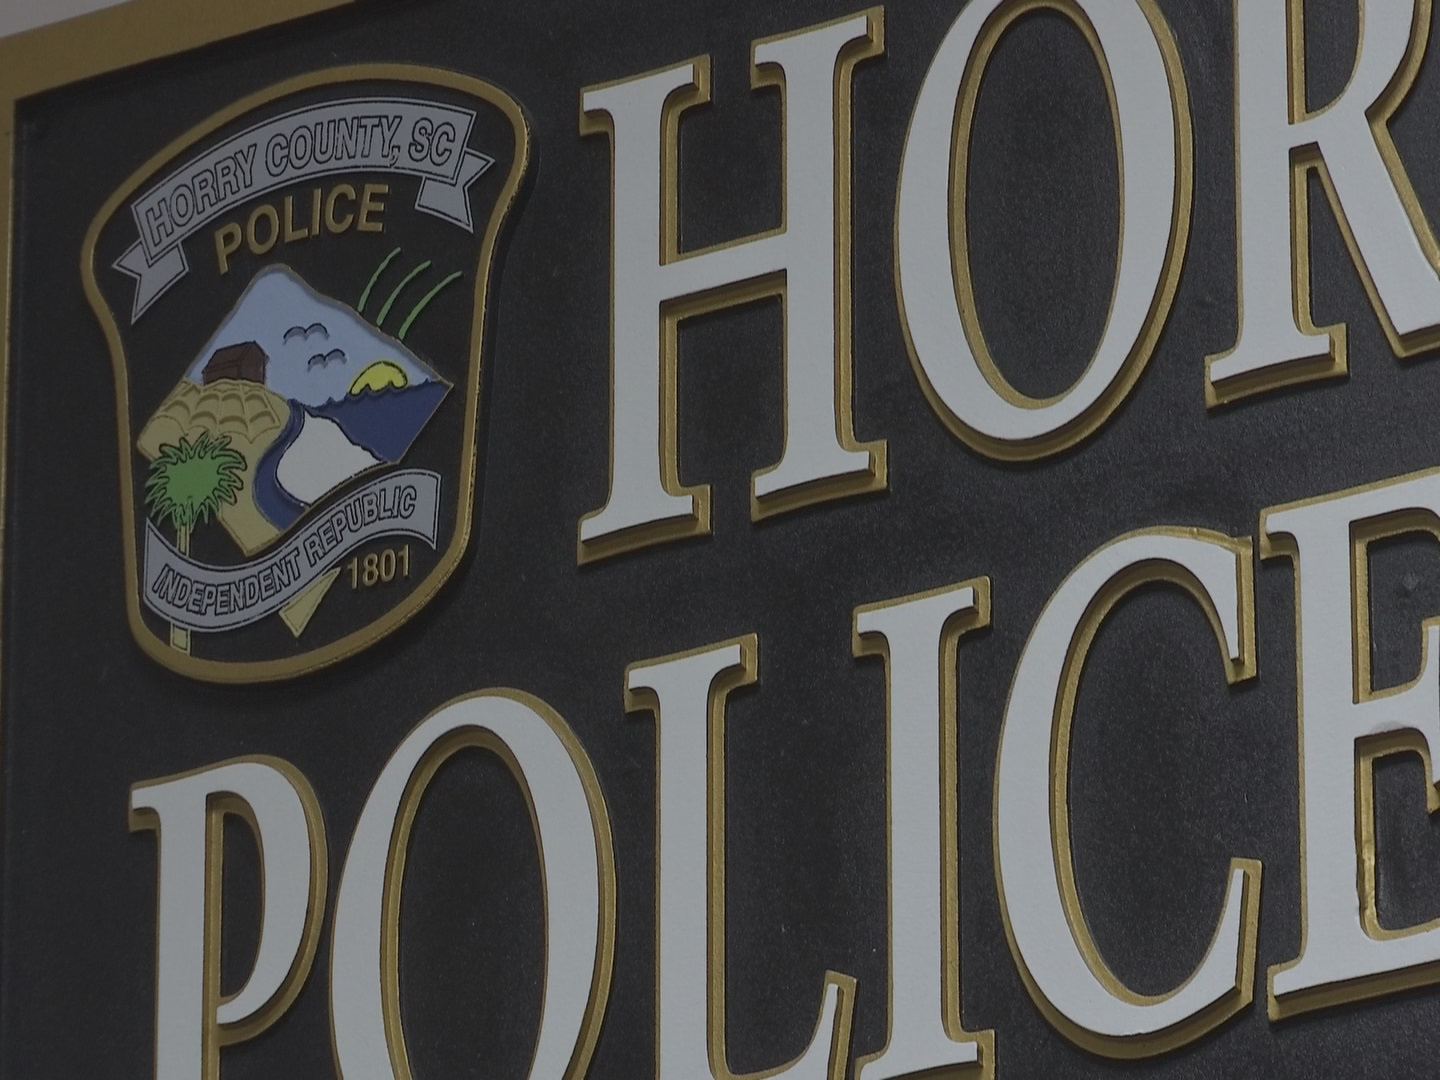 Horry County Police_85711